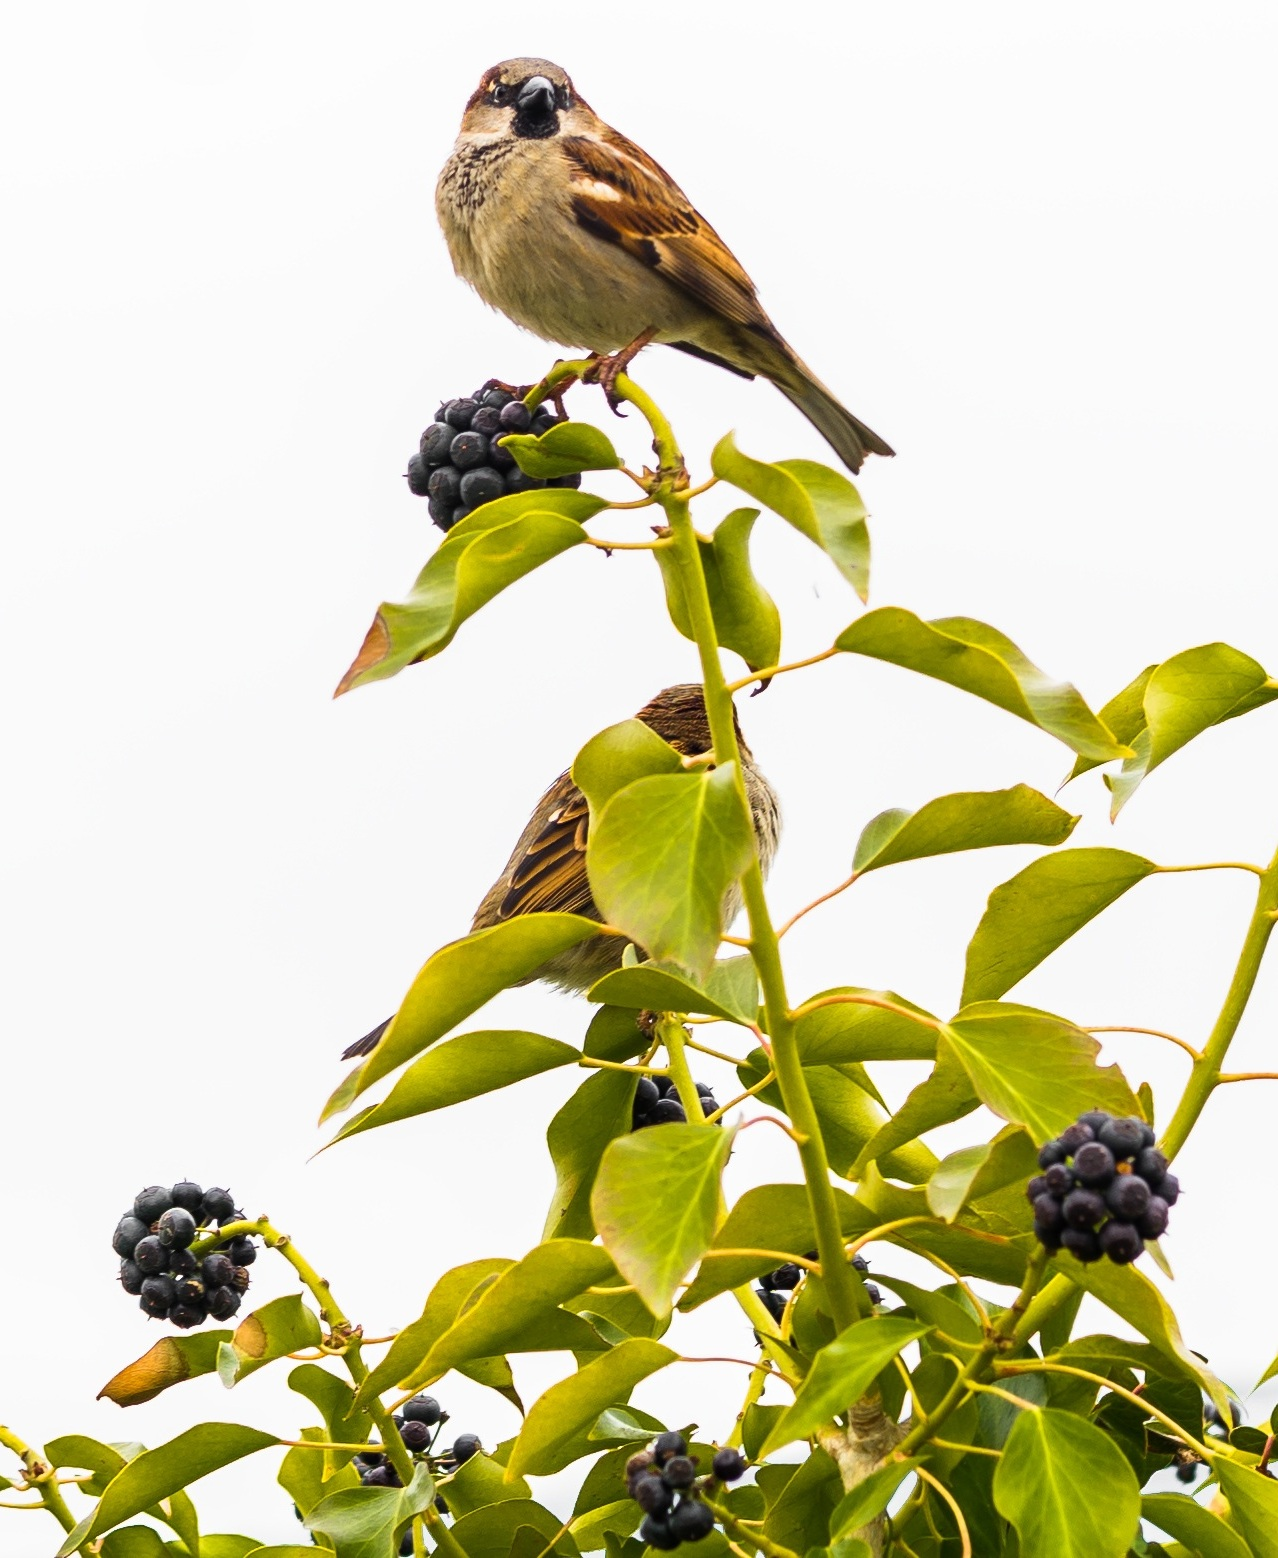 Picture of sparrows on a berry tree.